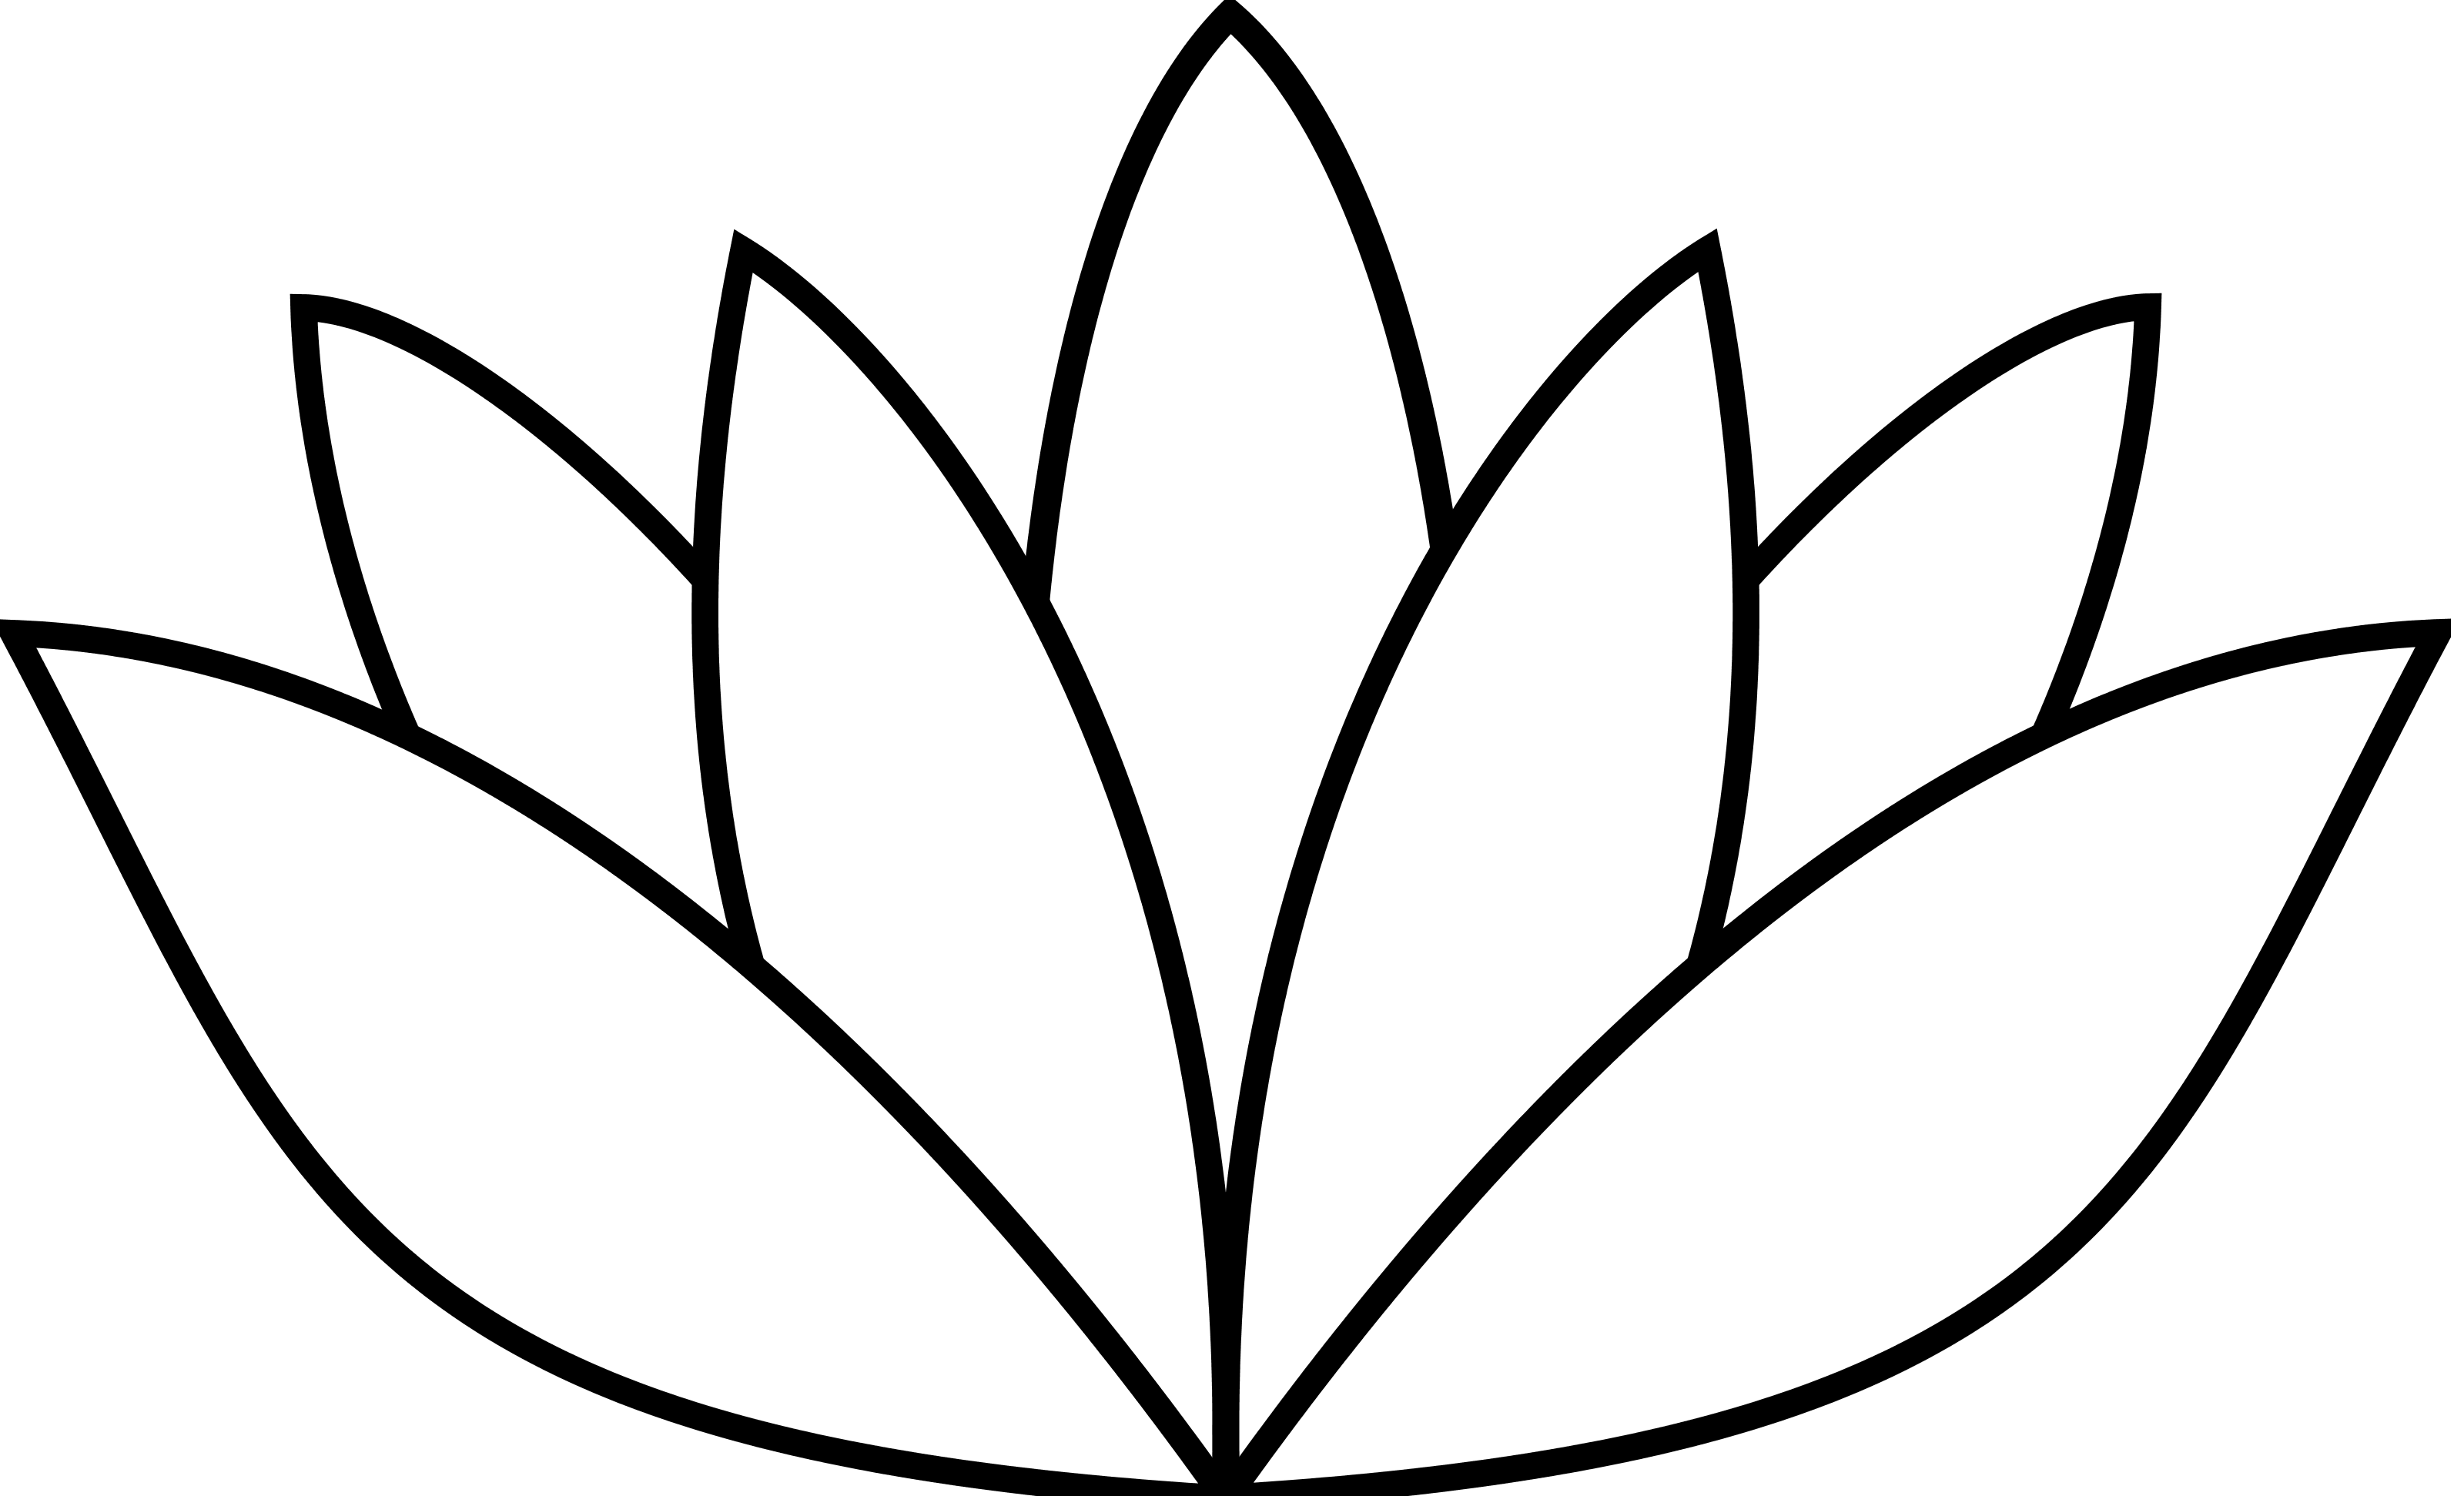 Free Lotus Blossom Cliparts, Download Free Clip Art, Free.